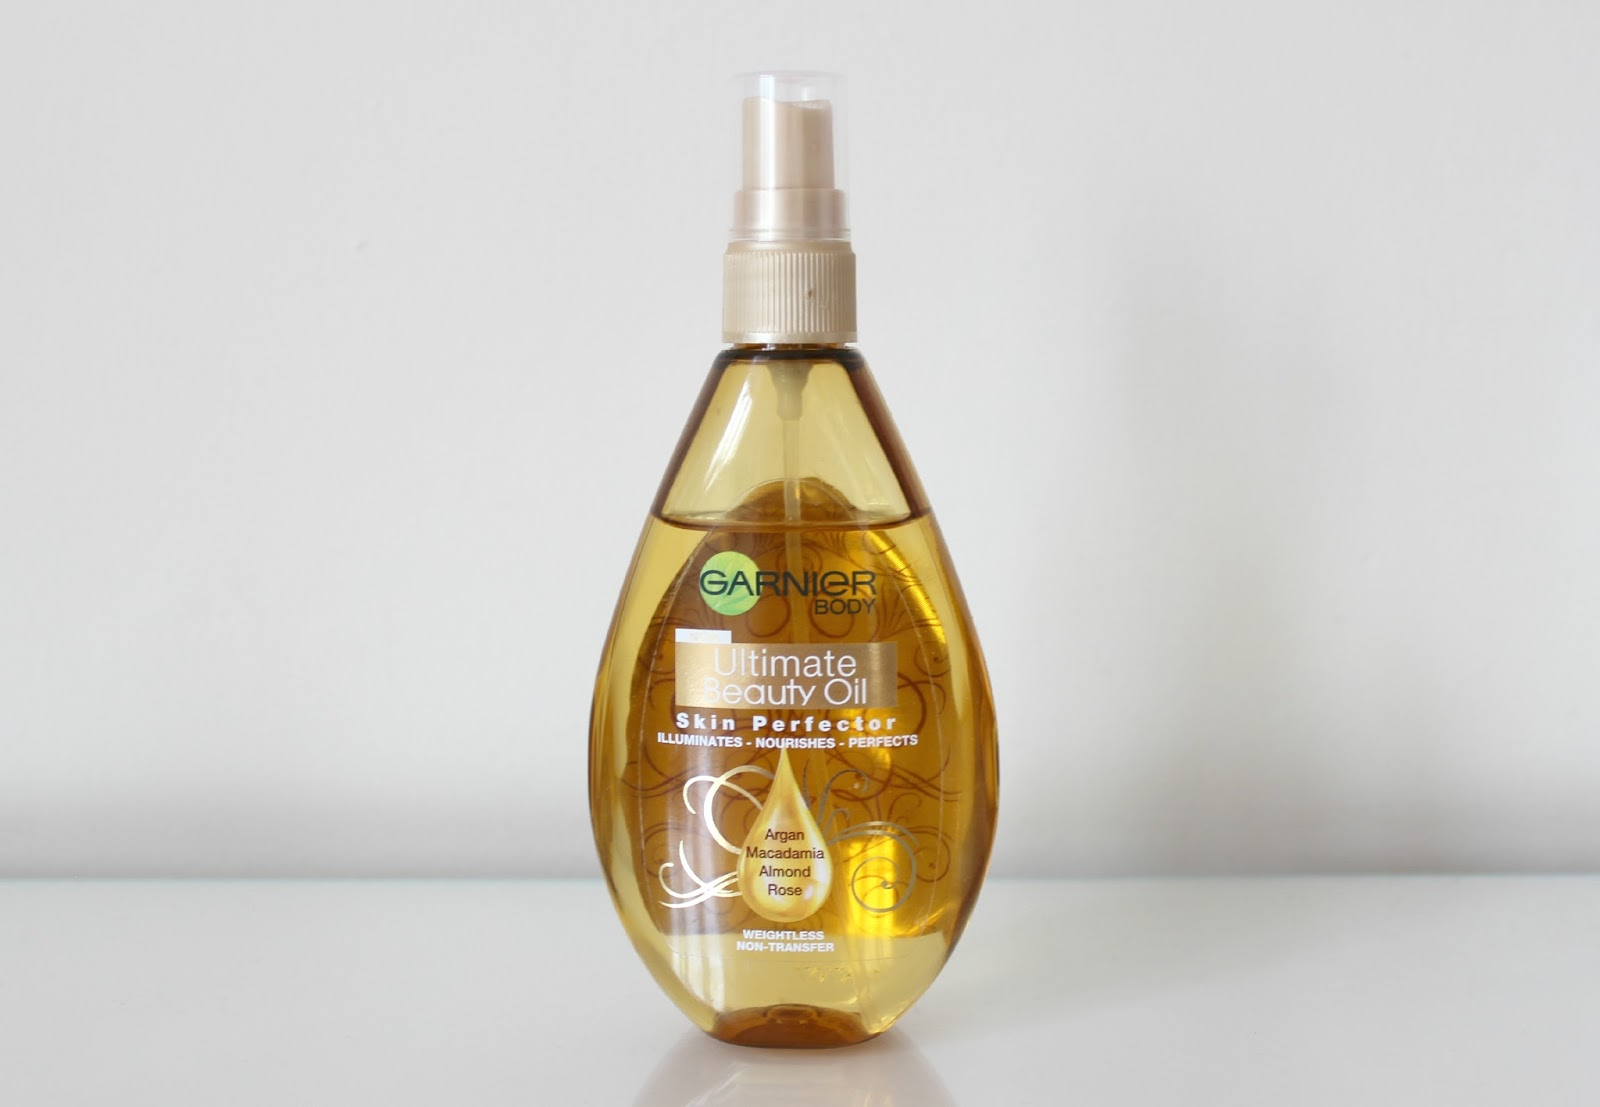 A picture of Garnier Ultimate Beauty Oil Skin Perfector